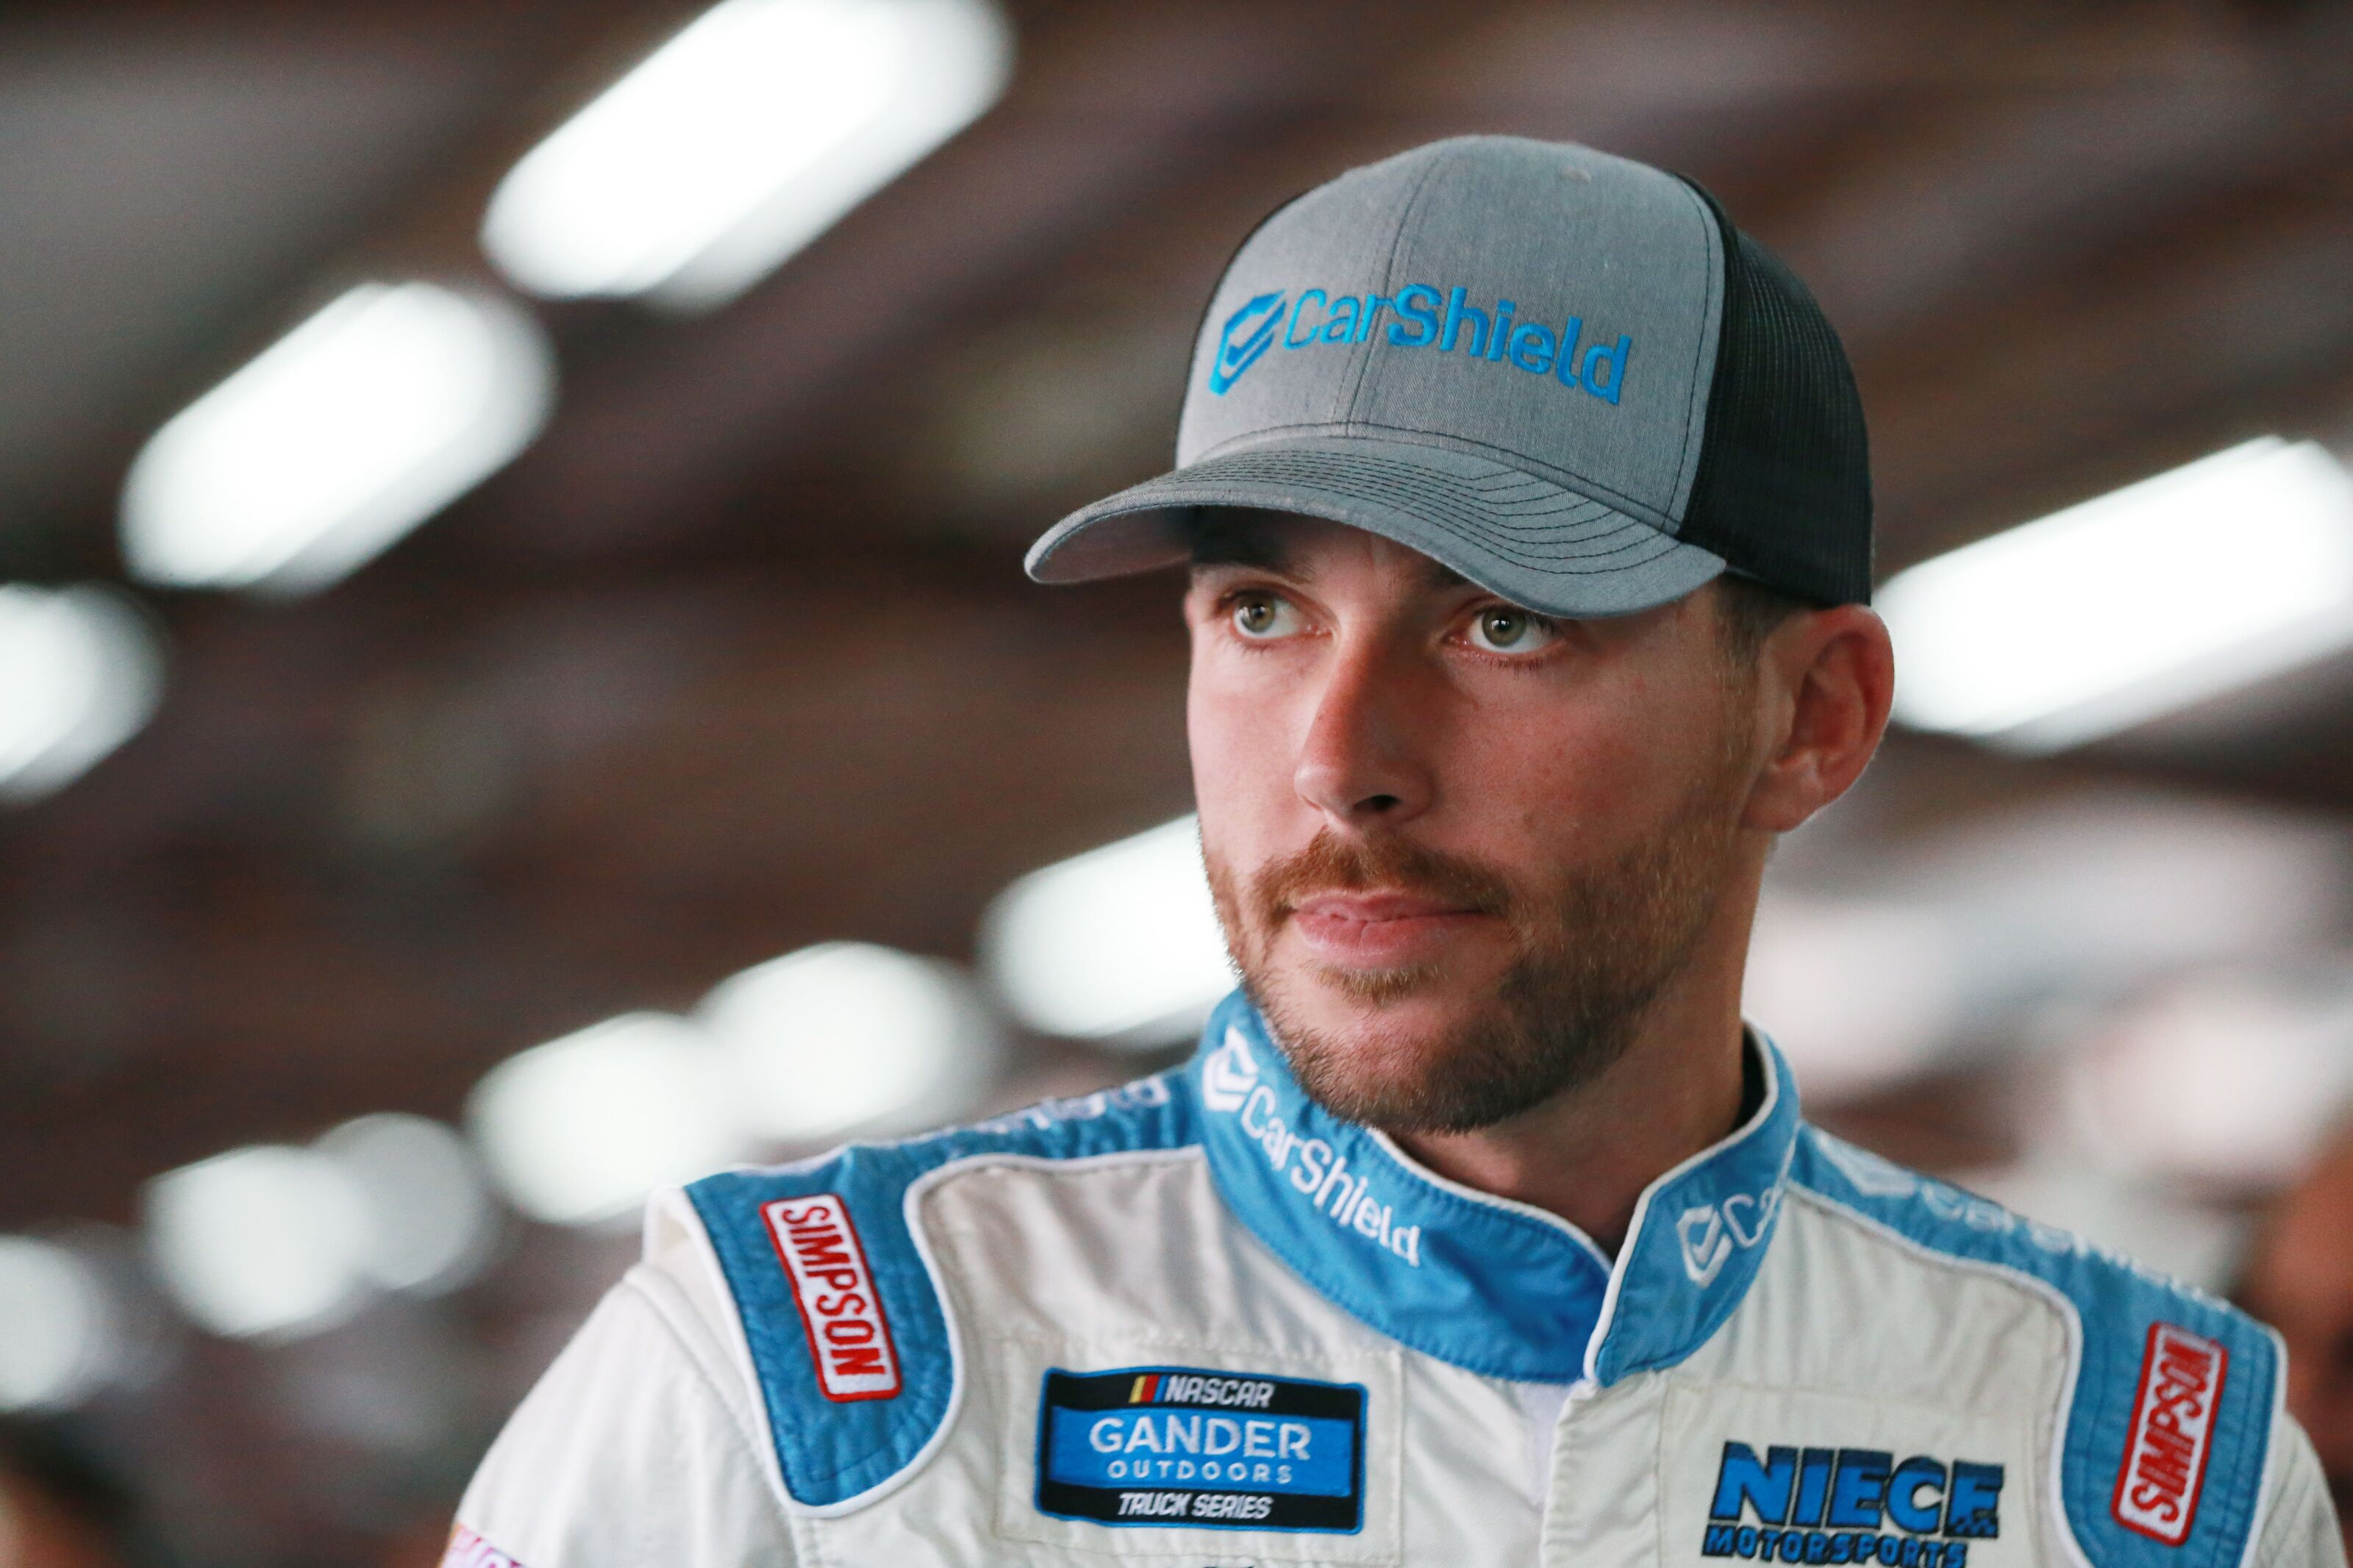 NASCAR Xfinity Series: Ross Chastain to drive for Kaulig Racing in 2020